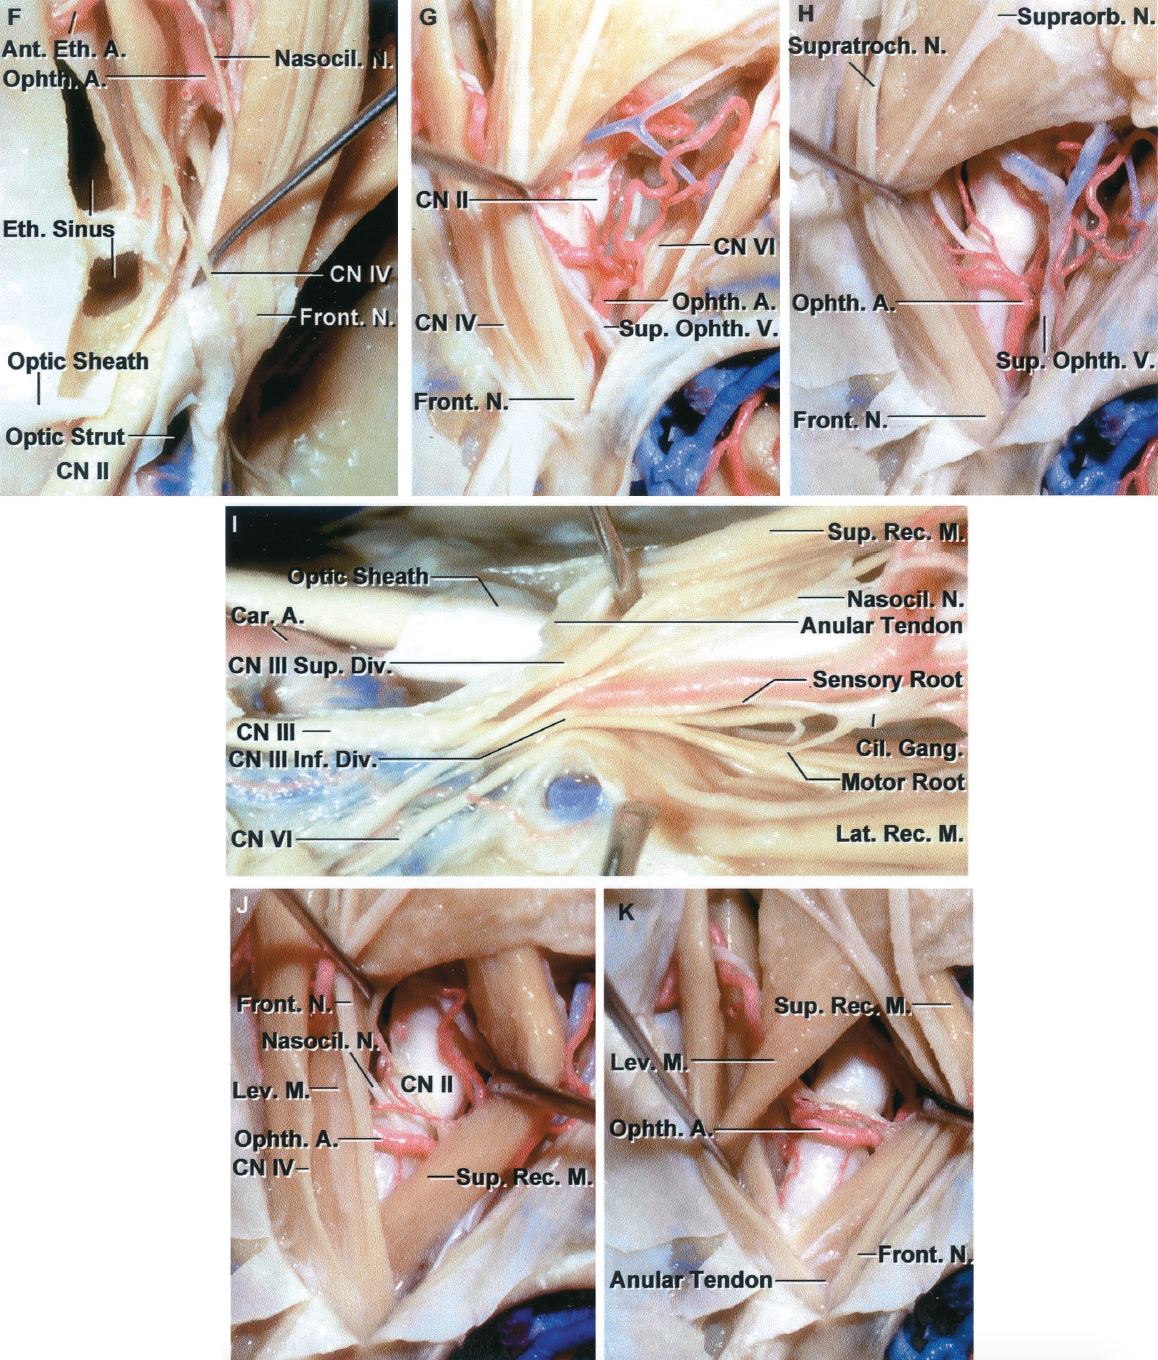 FIGURE 7.10. F-K. Orbitofrontal craniotomy in which the supraorbital rim and the anterior part of the orbital roof are elevated with the frontal bone flap. F, an incision has been extended backward through the annular tendon between the superior and medial rectus muscles and through the optic sheath to expose the full length of the optic nerve. The trochlear nerve passes above the levator muscle at the orbital apex in its passage to the superior oblique muscle and should be protected in completing the incision through the annular tendon and along the optic sheath. This type of incision in the annular tendon can be combined with the medial supraorbital approach to provide access to the optic nerve from the optic chiasm to the globe. The sphenoid and ethmoidal sinuses are exposed on the medial side of the orbit. G and H, lateral route to the intraconal and apical area. The lateral route to the optic nerve is directed through the interval between the levator and superior rectus muscle medially and the lateral rectus muscle laterally. This route is often selected for lesions that involve the area lateral to the optic nerve or those extending through the superior orbital fissure. G, the levator and superior rectus muscles and the superior ophthalmic vein have been retracted medially to expose the intraorbital part of the optic nerve. The superior ophthalmic vein blocks the view of the deep apical area. H, the superior ophthalmic vein has been displaced laterally to expose the deep apical area. It blocks the view of the apical area, as shown in G, when it is retracted medially. I, the annular tendon has been divided between the origin of the lateral and superior rectus muscles, as can be performed in the lateral approach. The origin of the superior rectus muscle from the annular tendon has been retracted medially and the origin of the lateral rectus muscle has been retracted laterally. This incision can be combined with a lateral supraorbital approach to increase access t